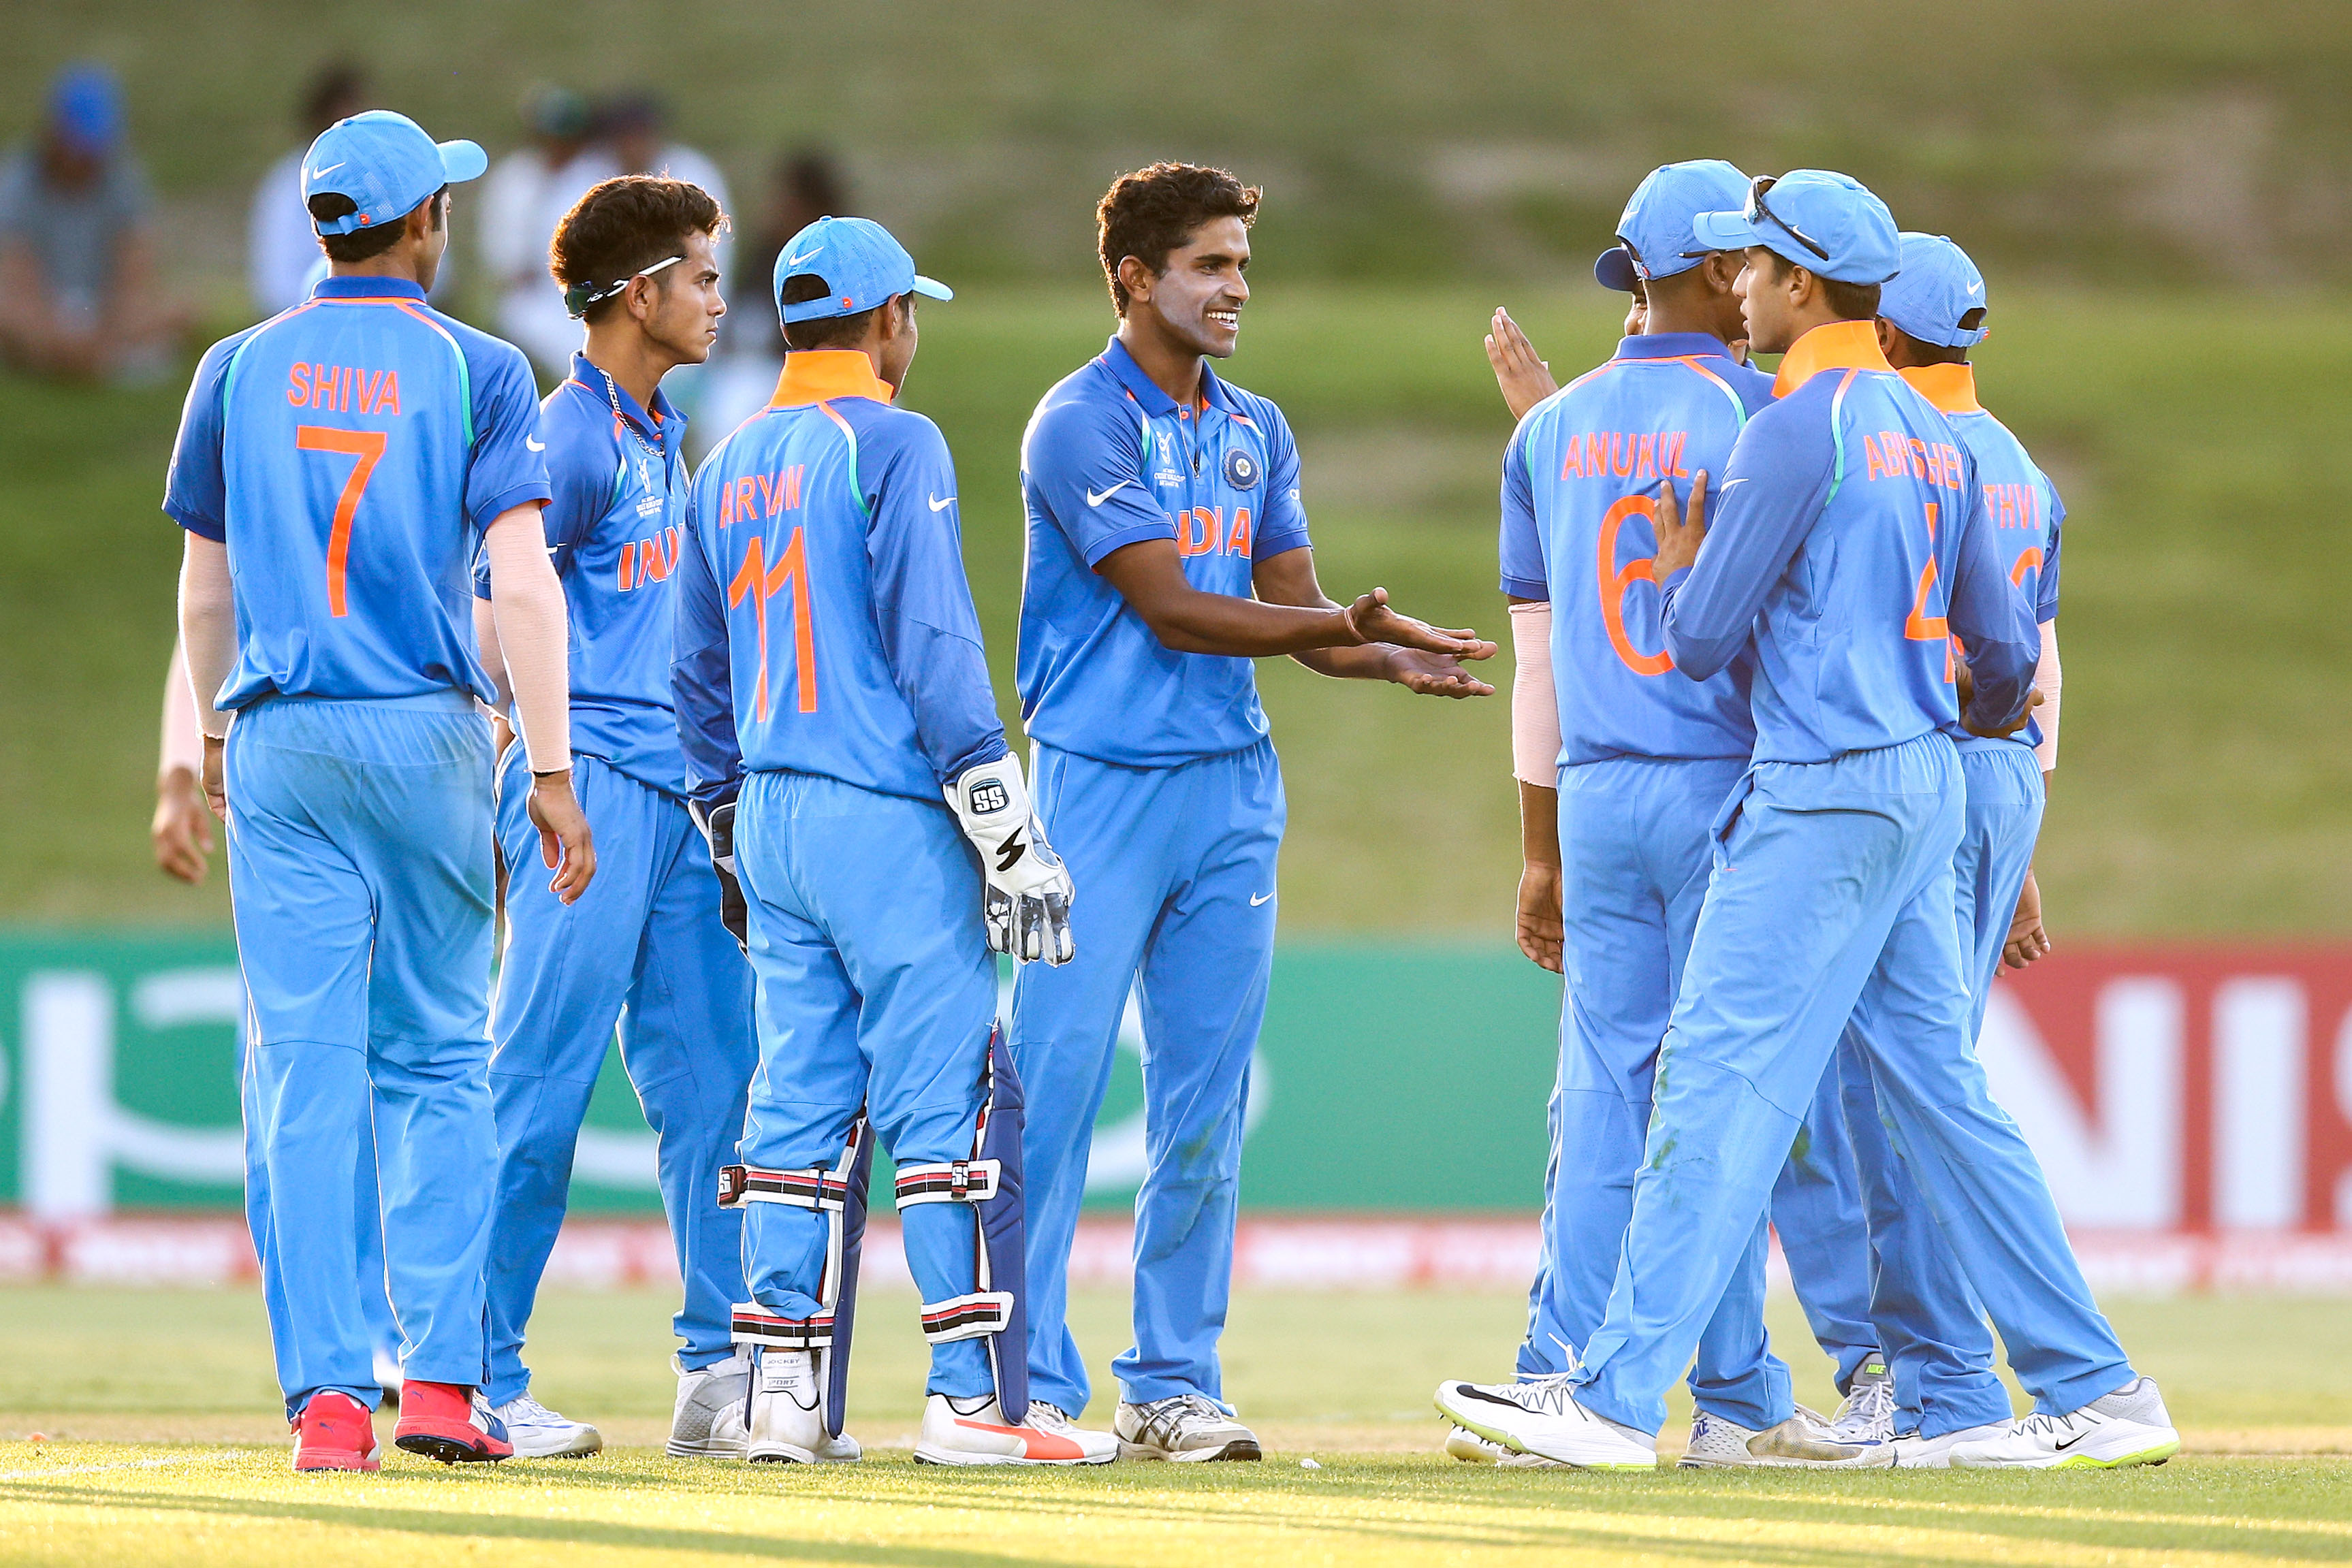 SHAW AND KALRA SCRIPT EASY WIN FOR INDIA OVER AUSTRALIA